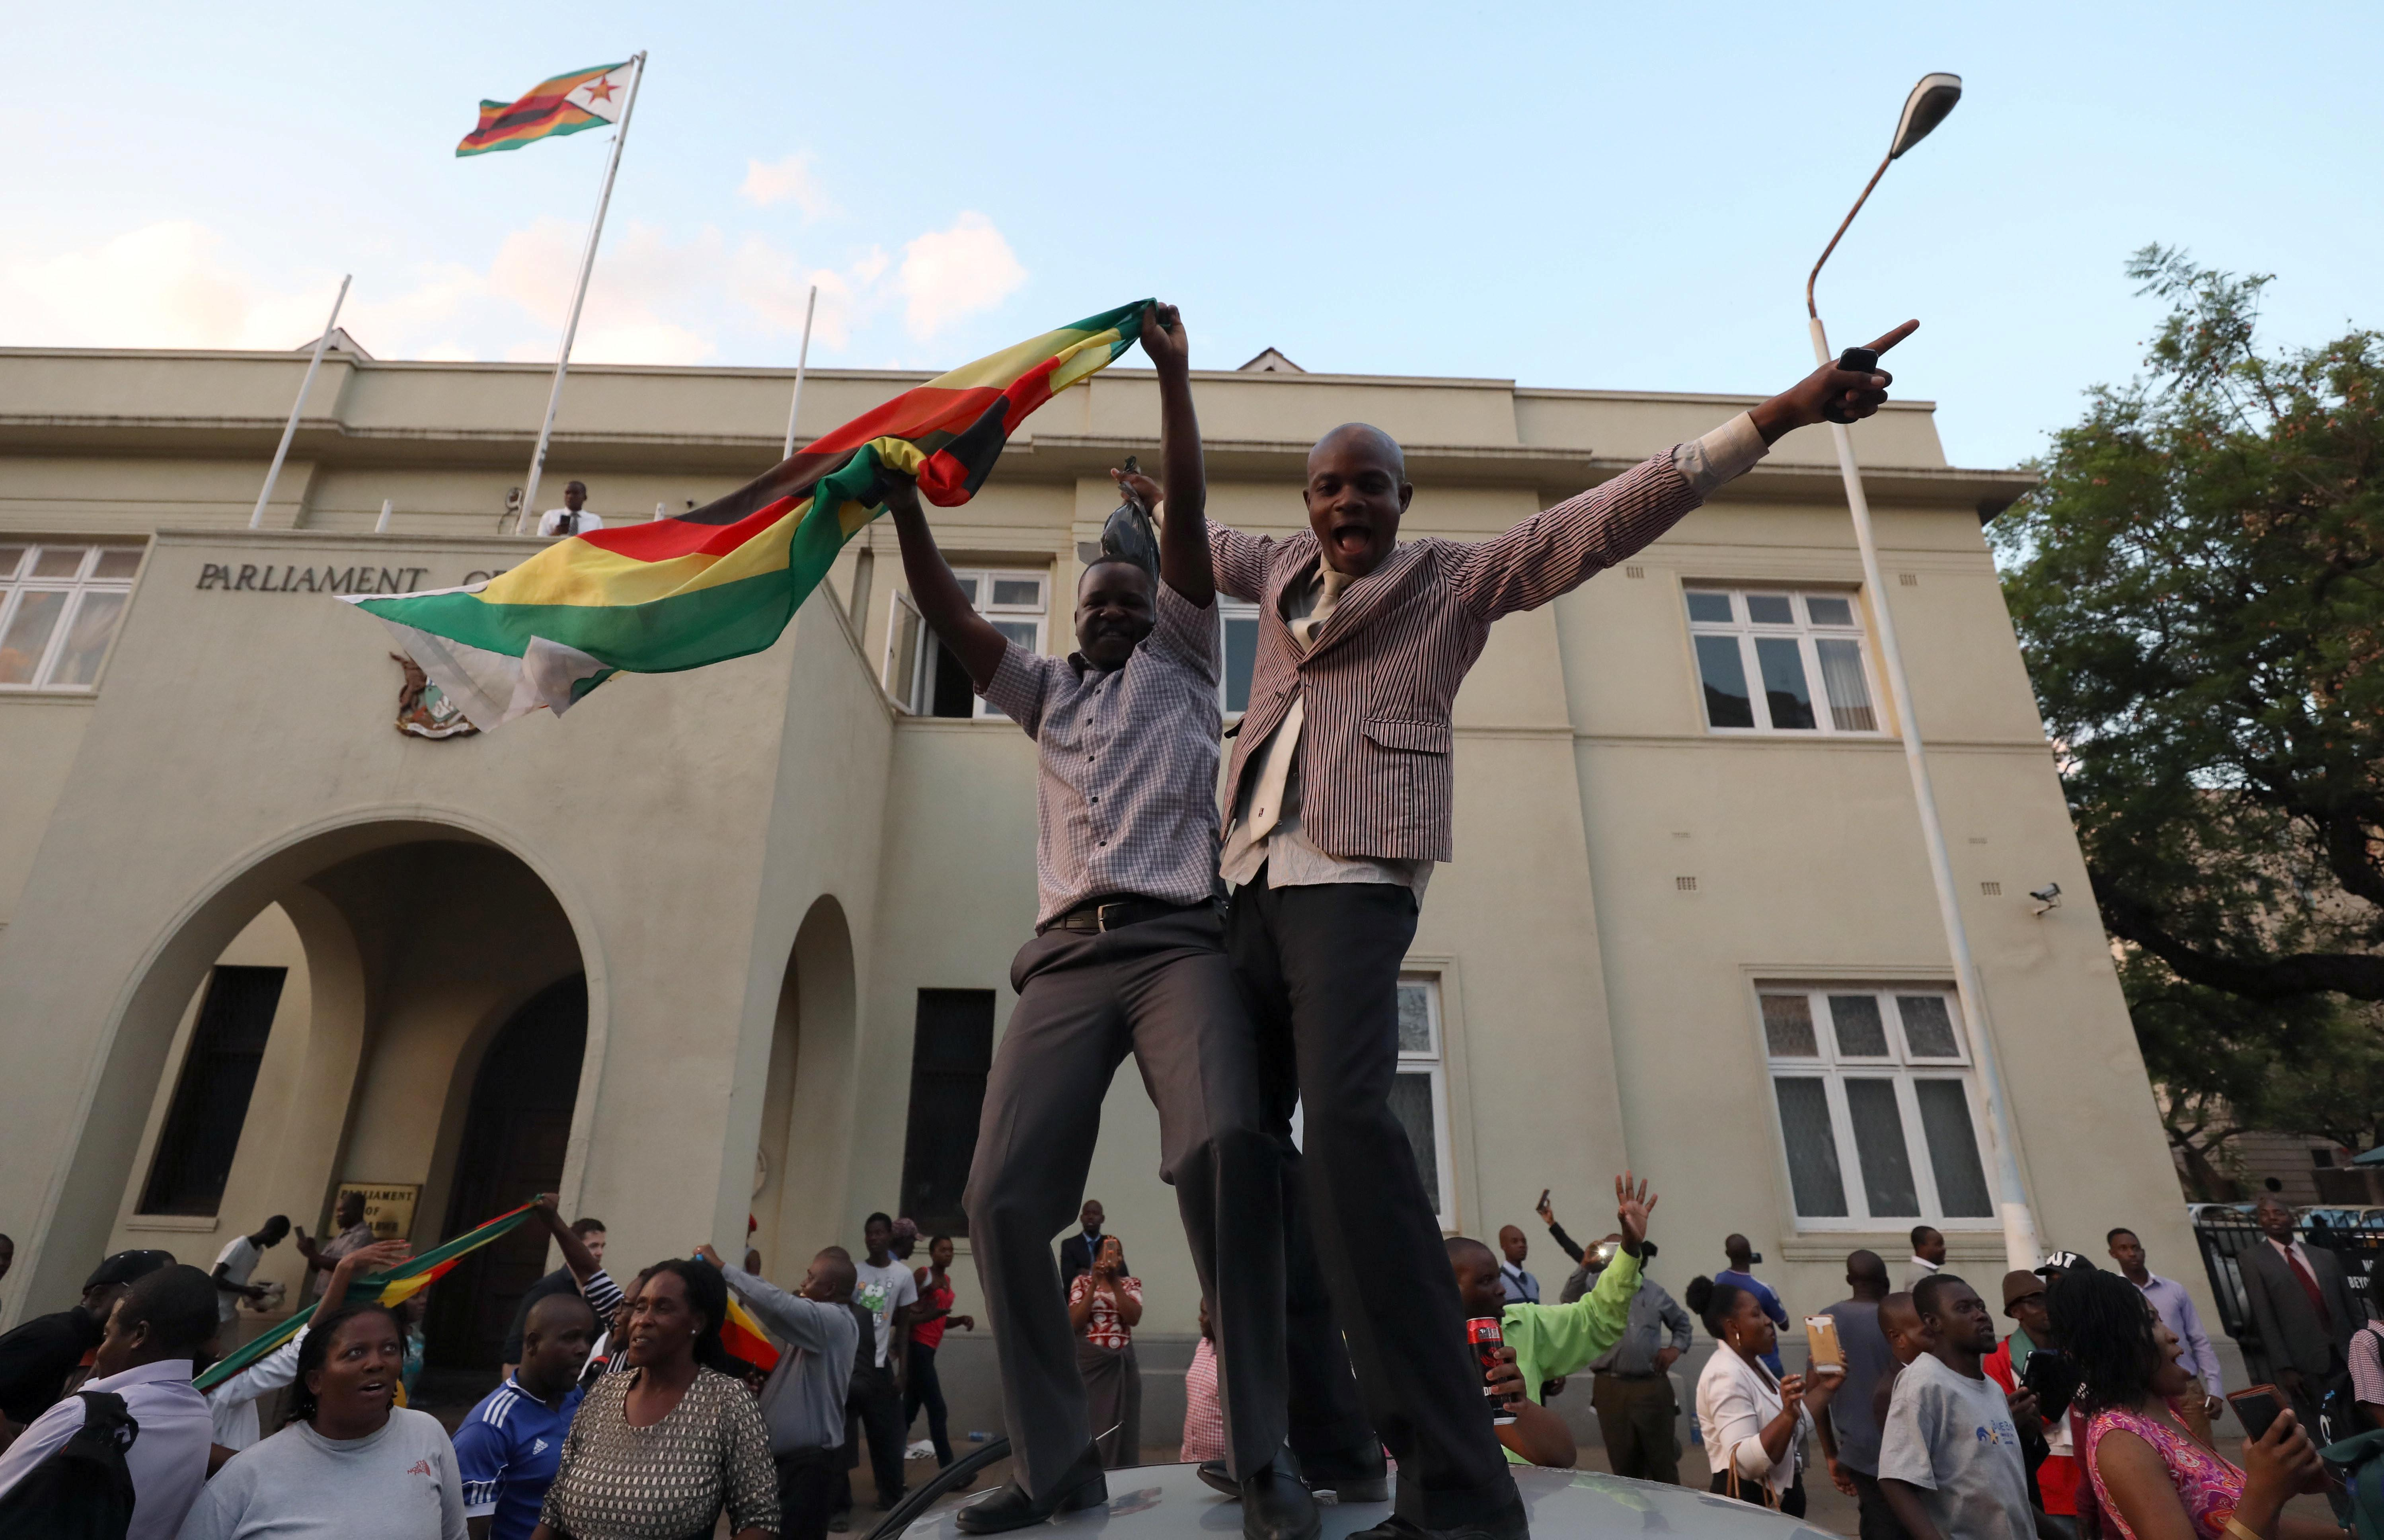 Zimbabweans celebrate after President Robert Mugabe resigns in Harare, Zimbabwe November 21, 2017. Mike Hutchings